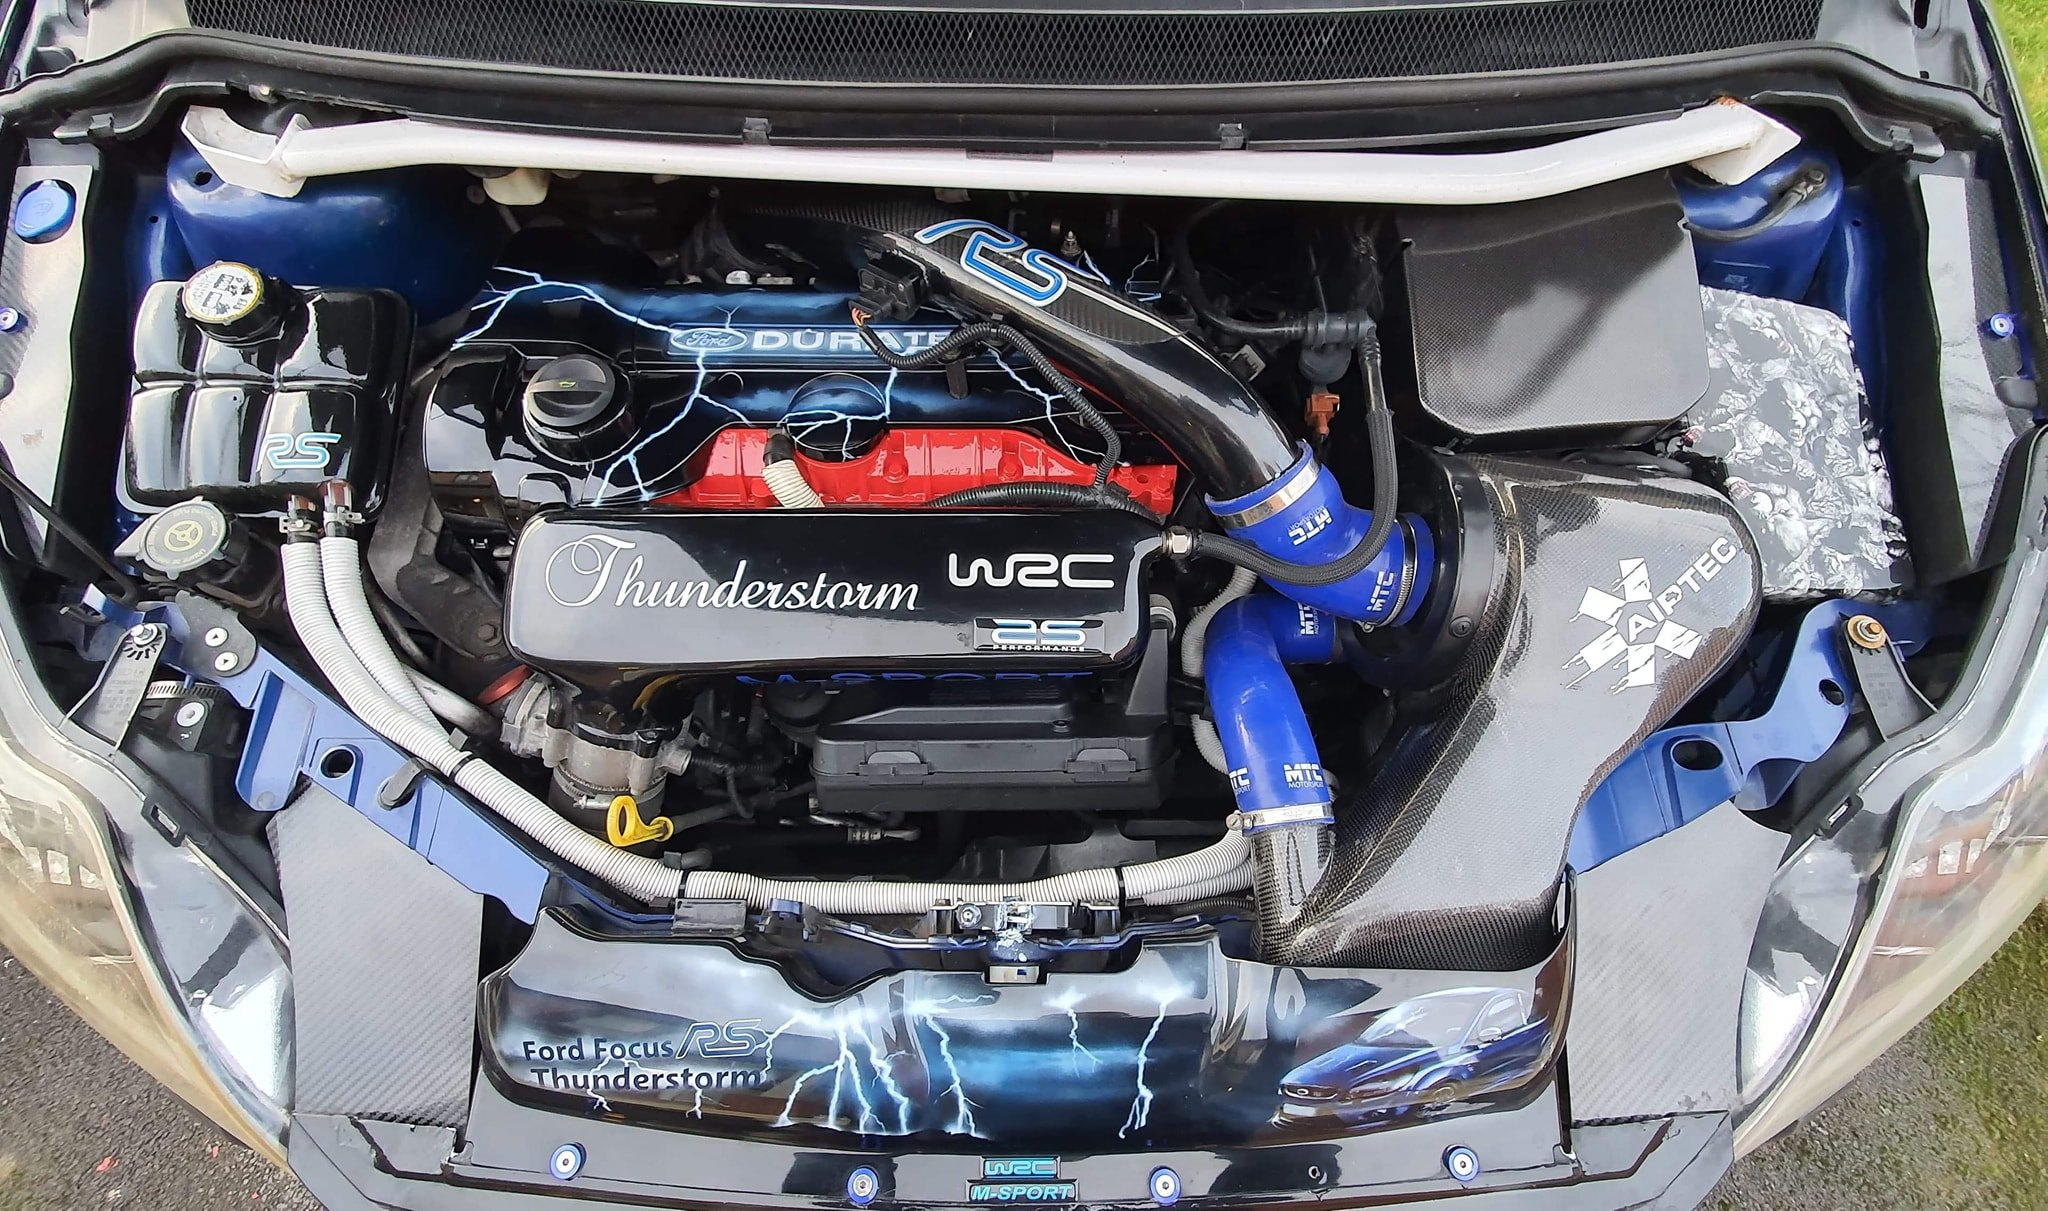 Ford Thunderstorm Engine Bay